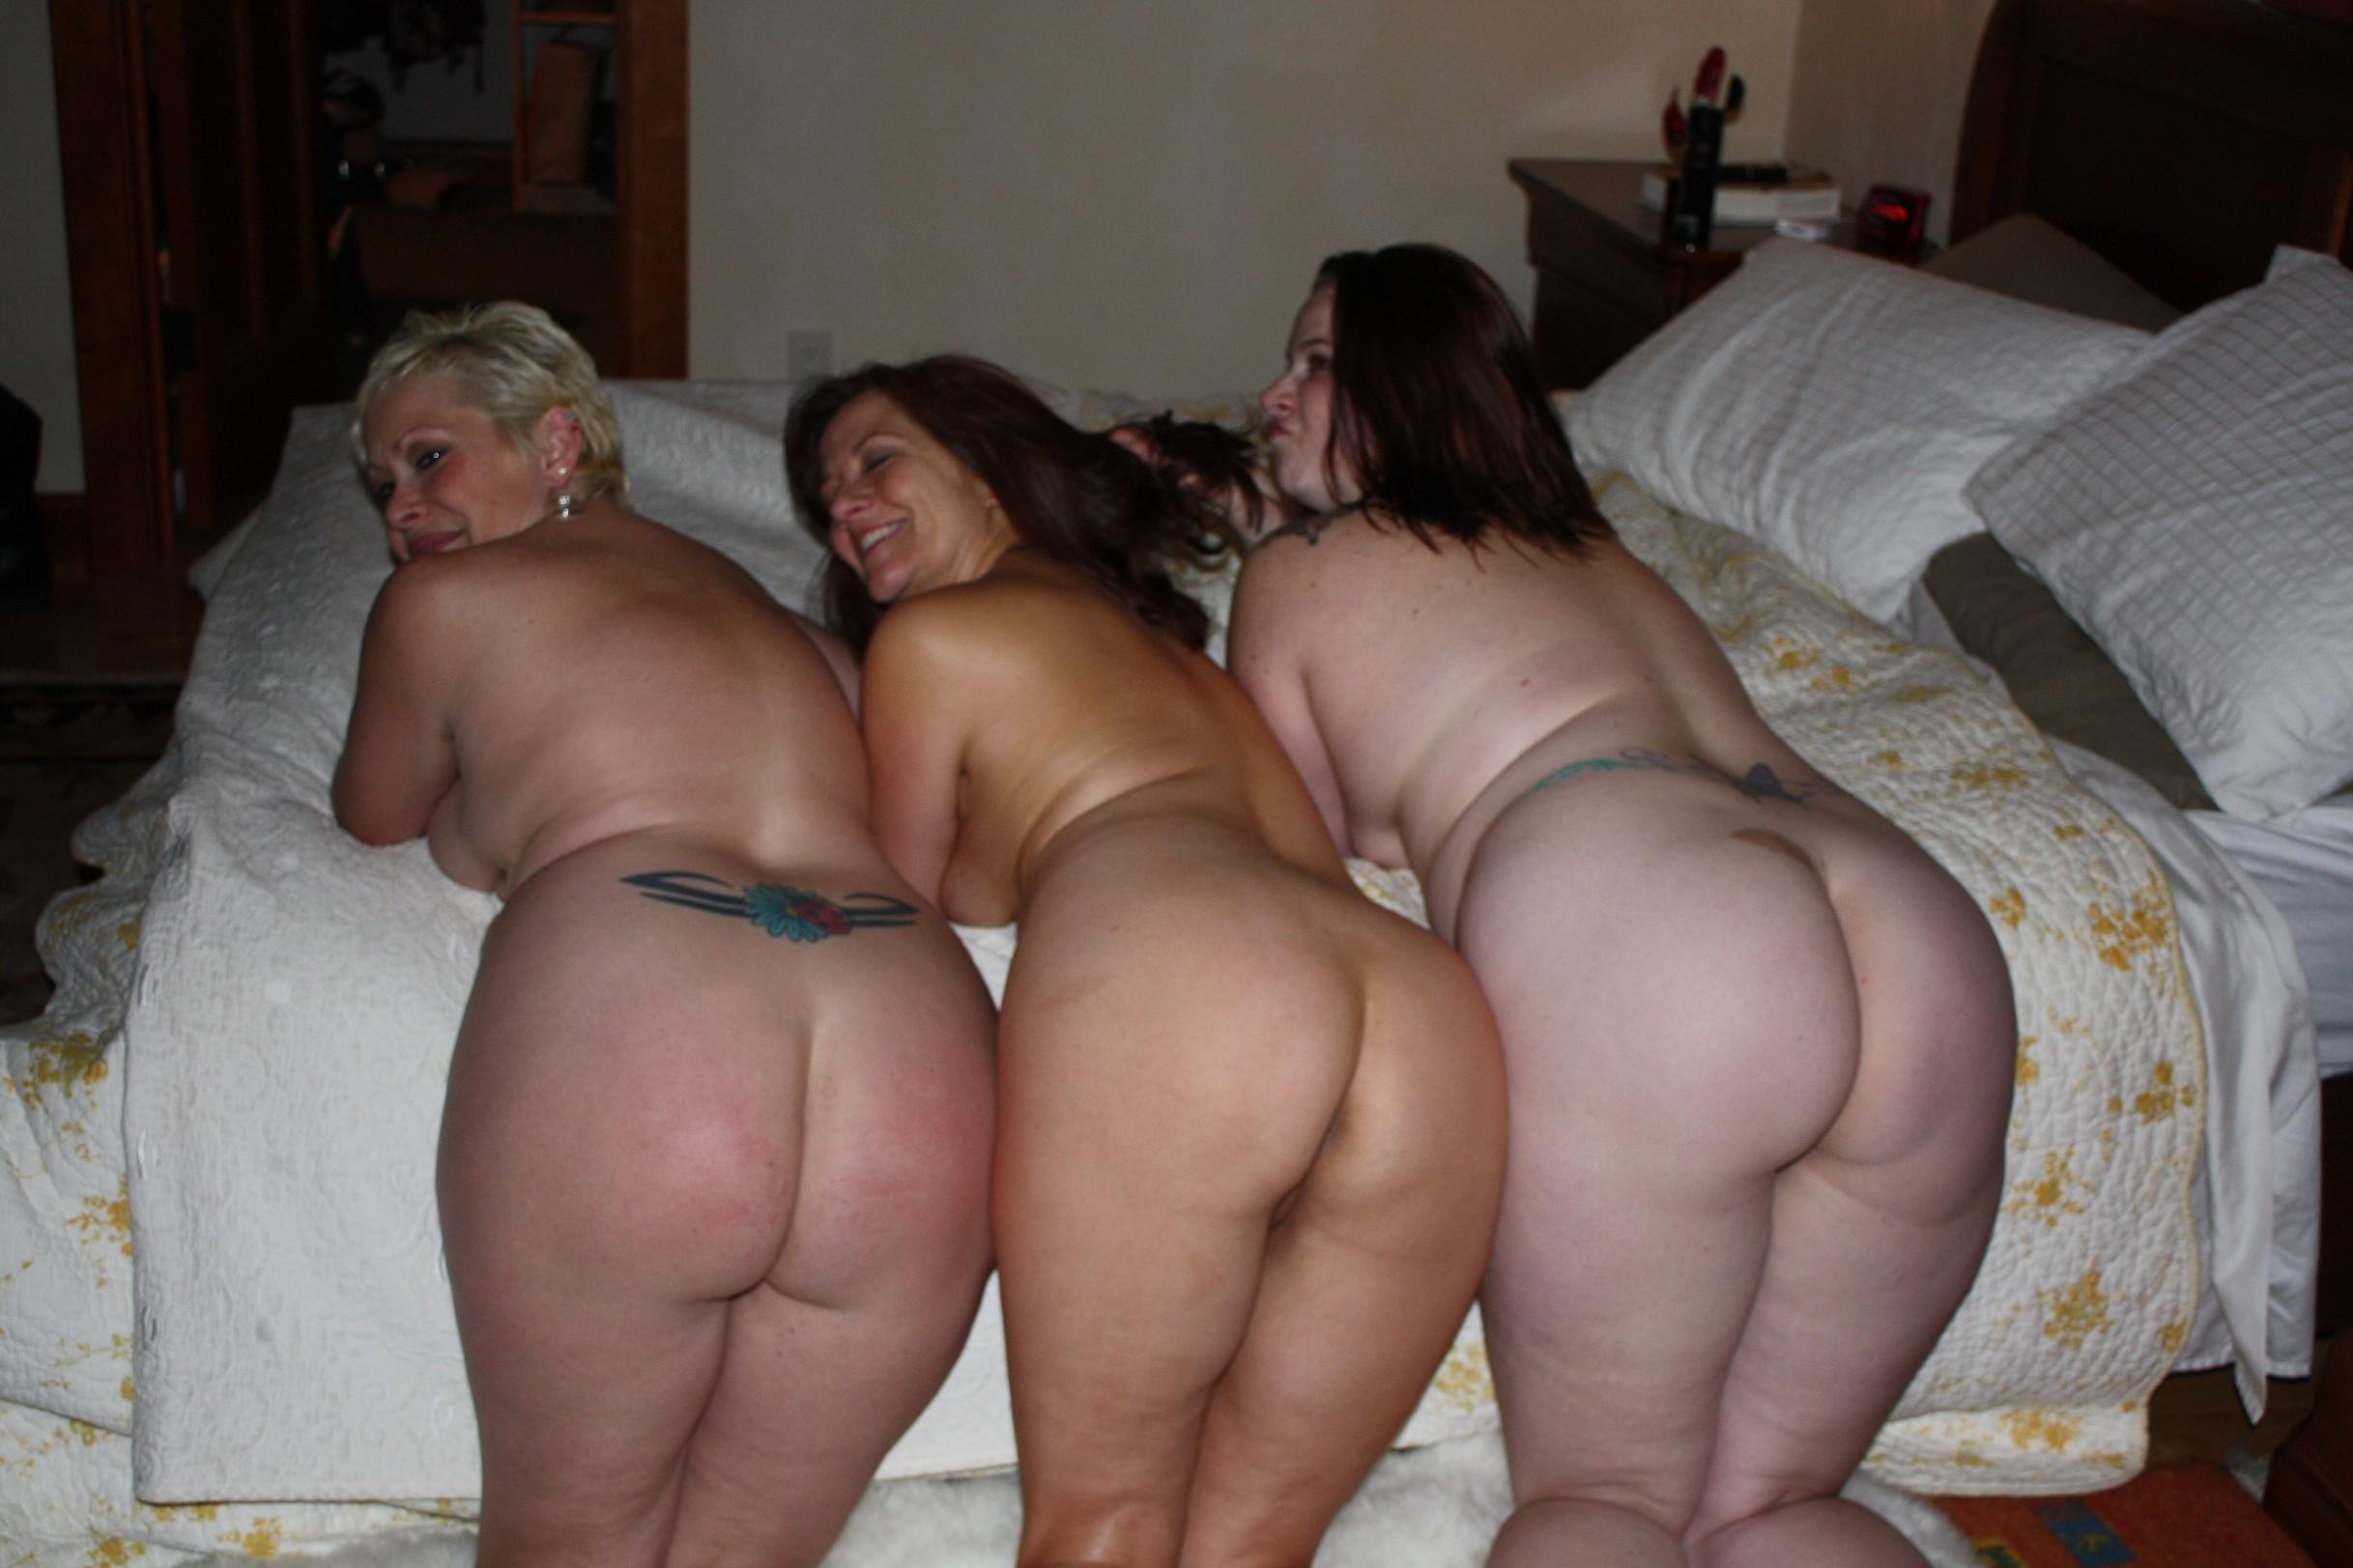 Naked mature women boldly present big asses in all their glory. Three nude ladies show their fluffy asses very erotically